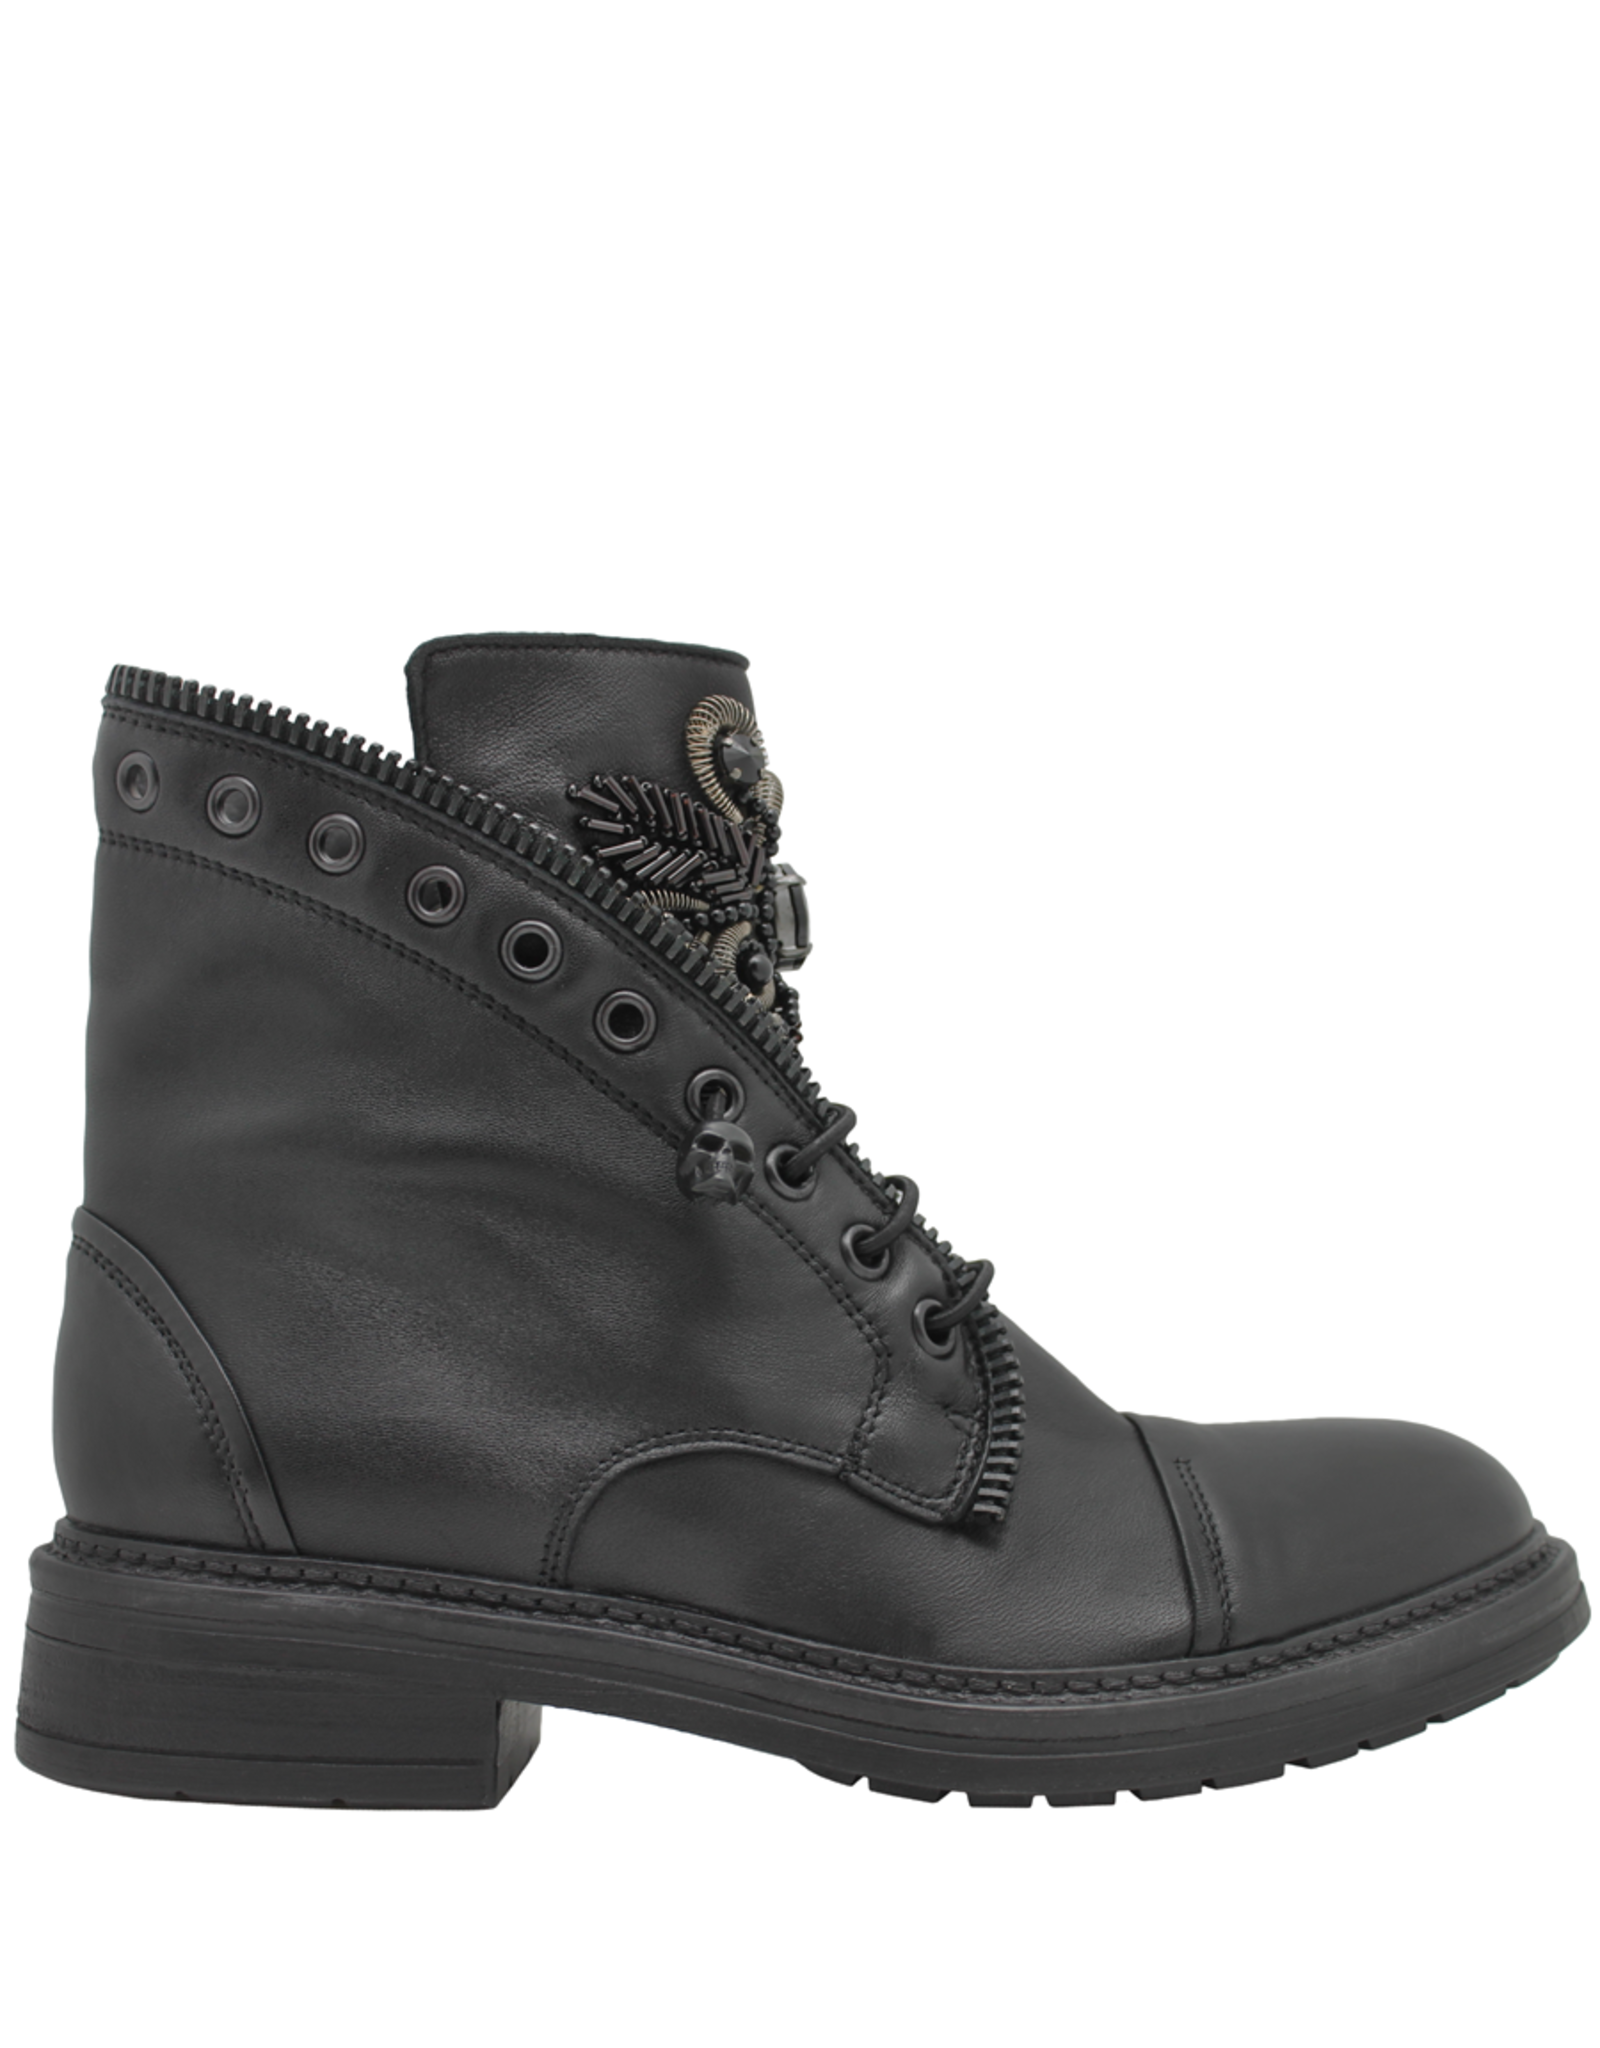 Now Now Black  Pull On Boot Zipper Trim With Medallion Detail 6468